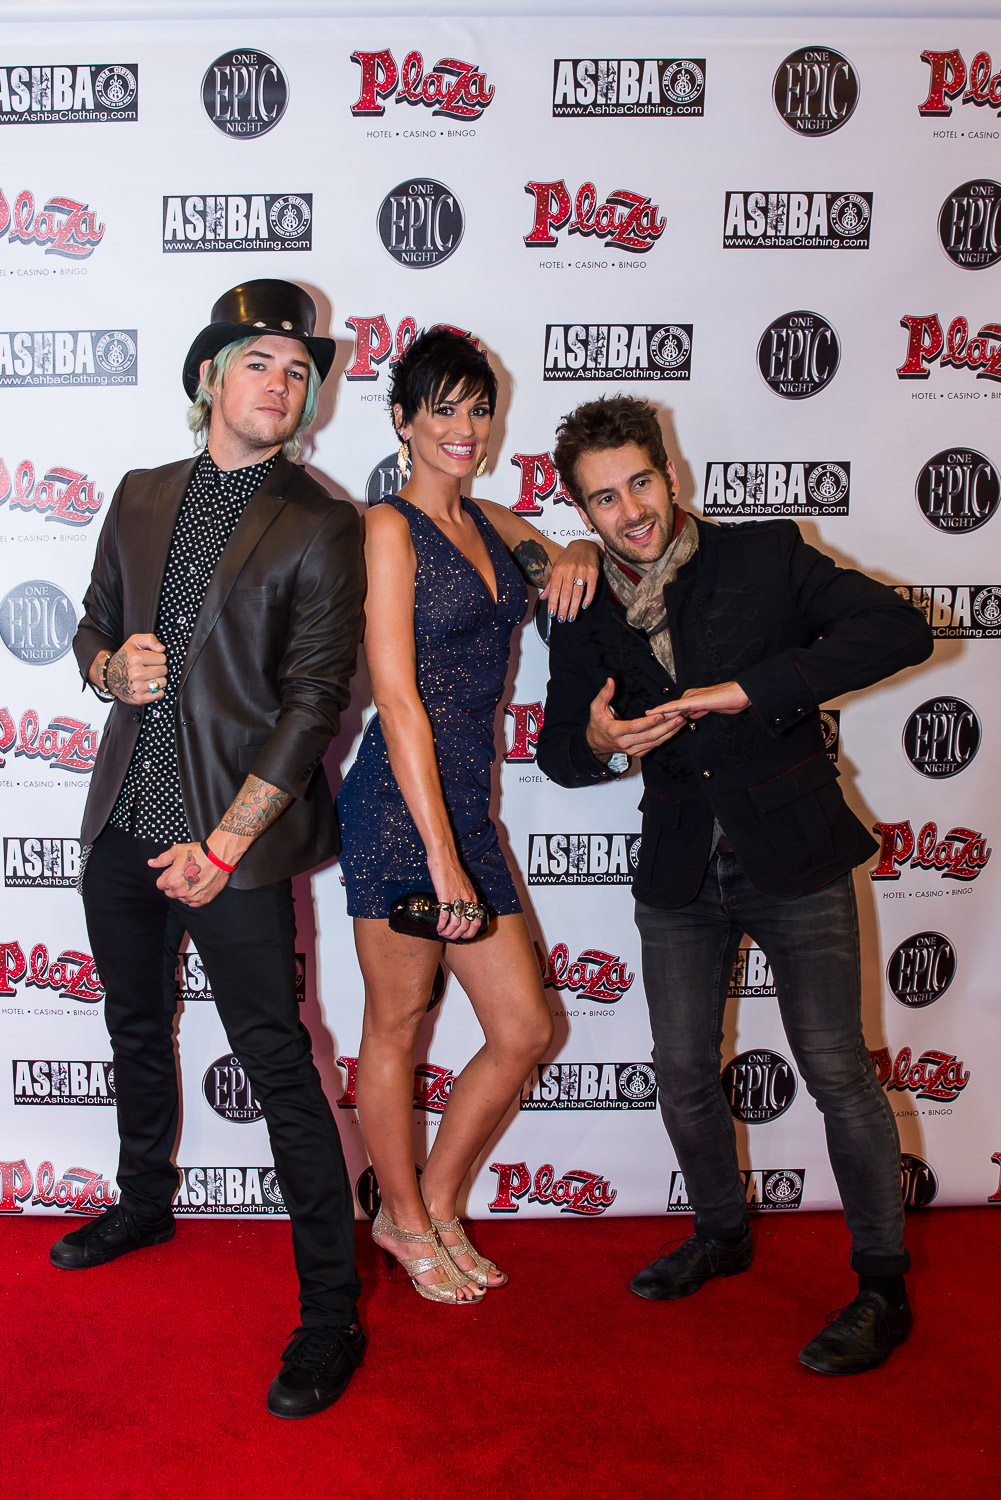 James Durbin, Megan Rucker, Will Champlin